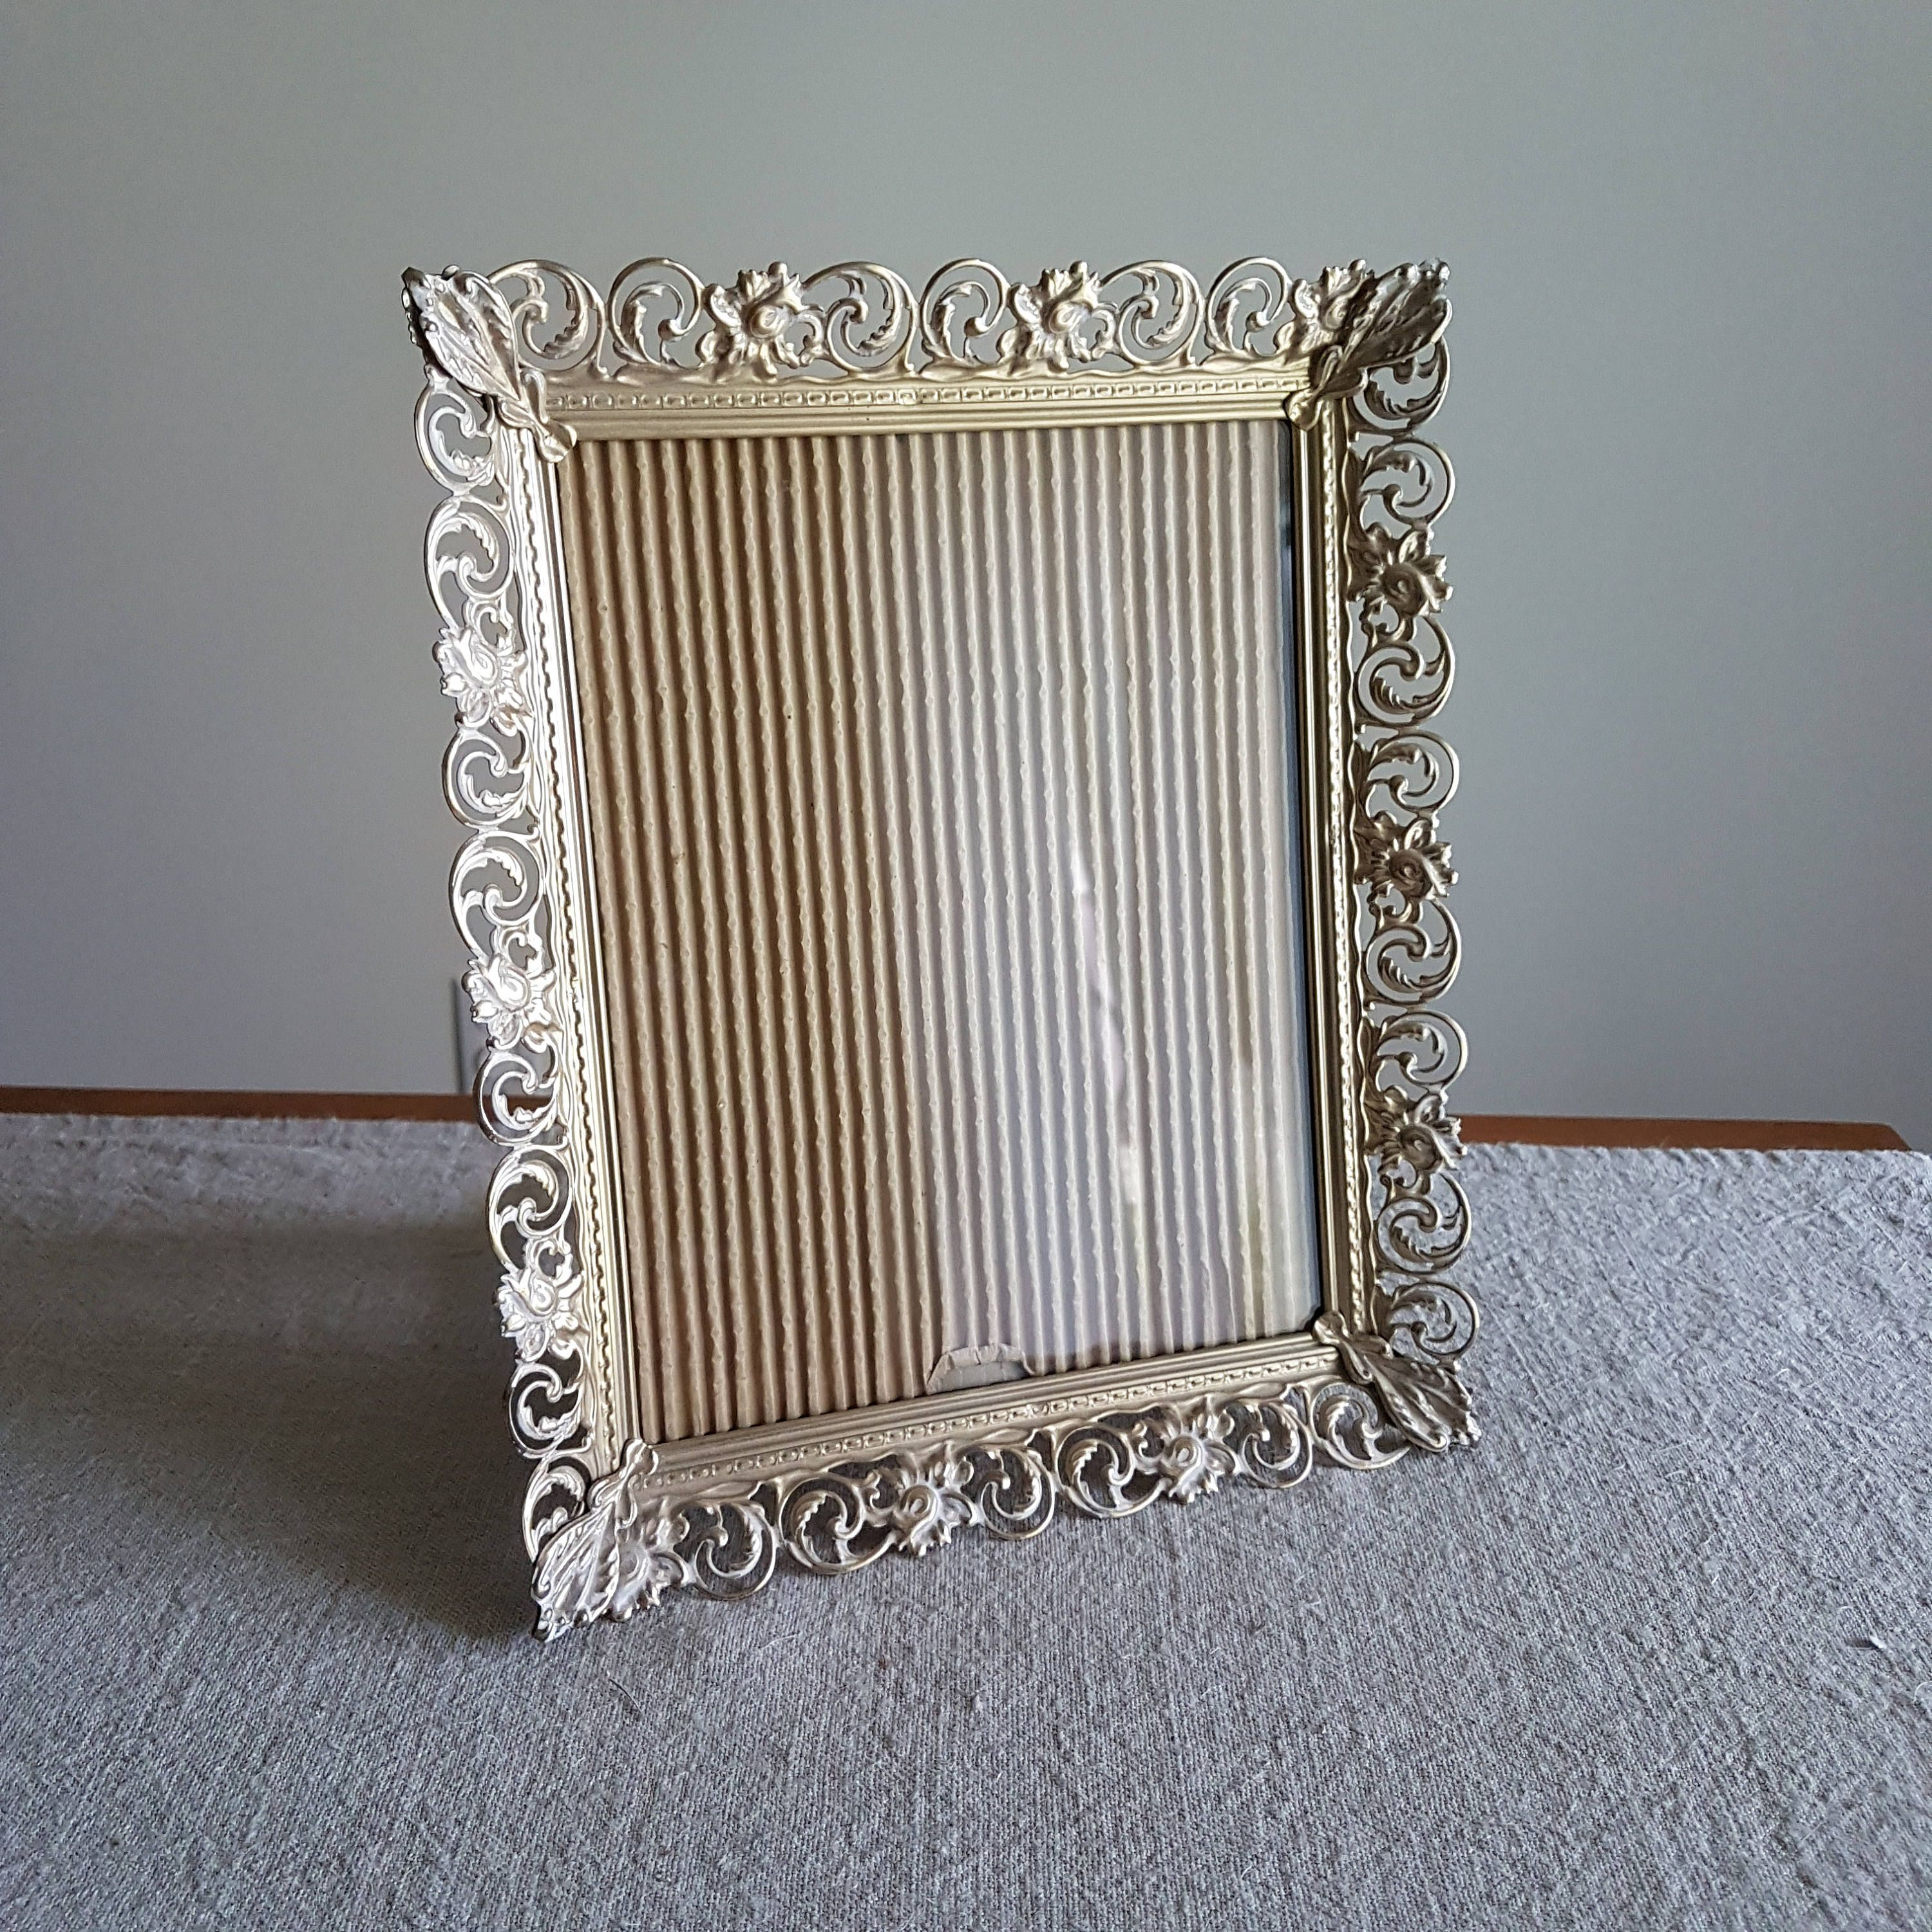 8 x 10 gold tone metal picture frame ornate filigree floral 8 x 10 gold tone metal picture frame ornate filigree floral design jeuxipadfo Images